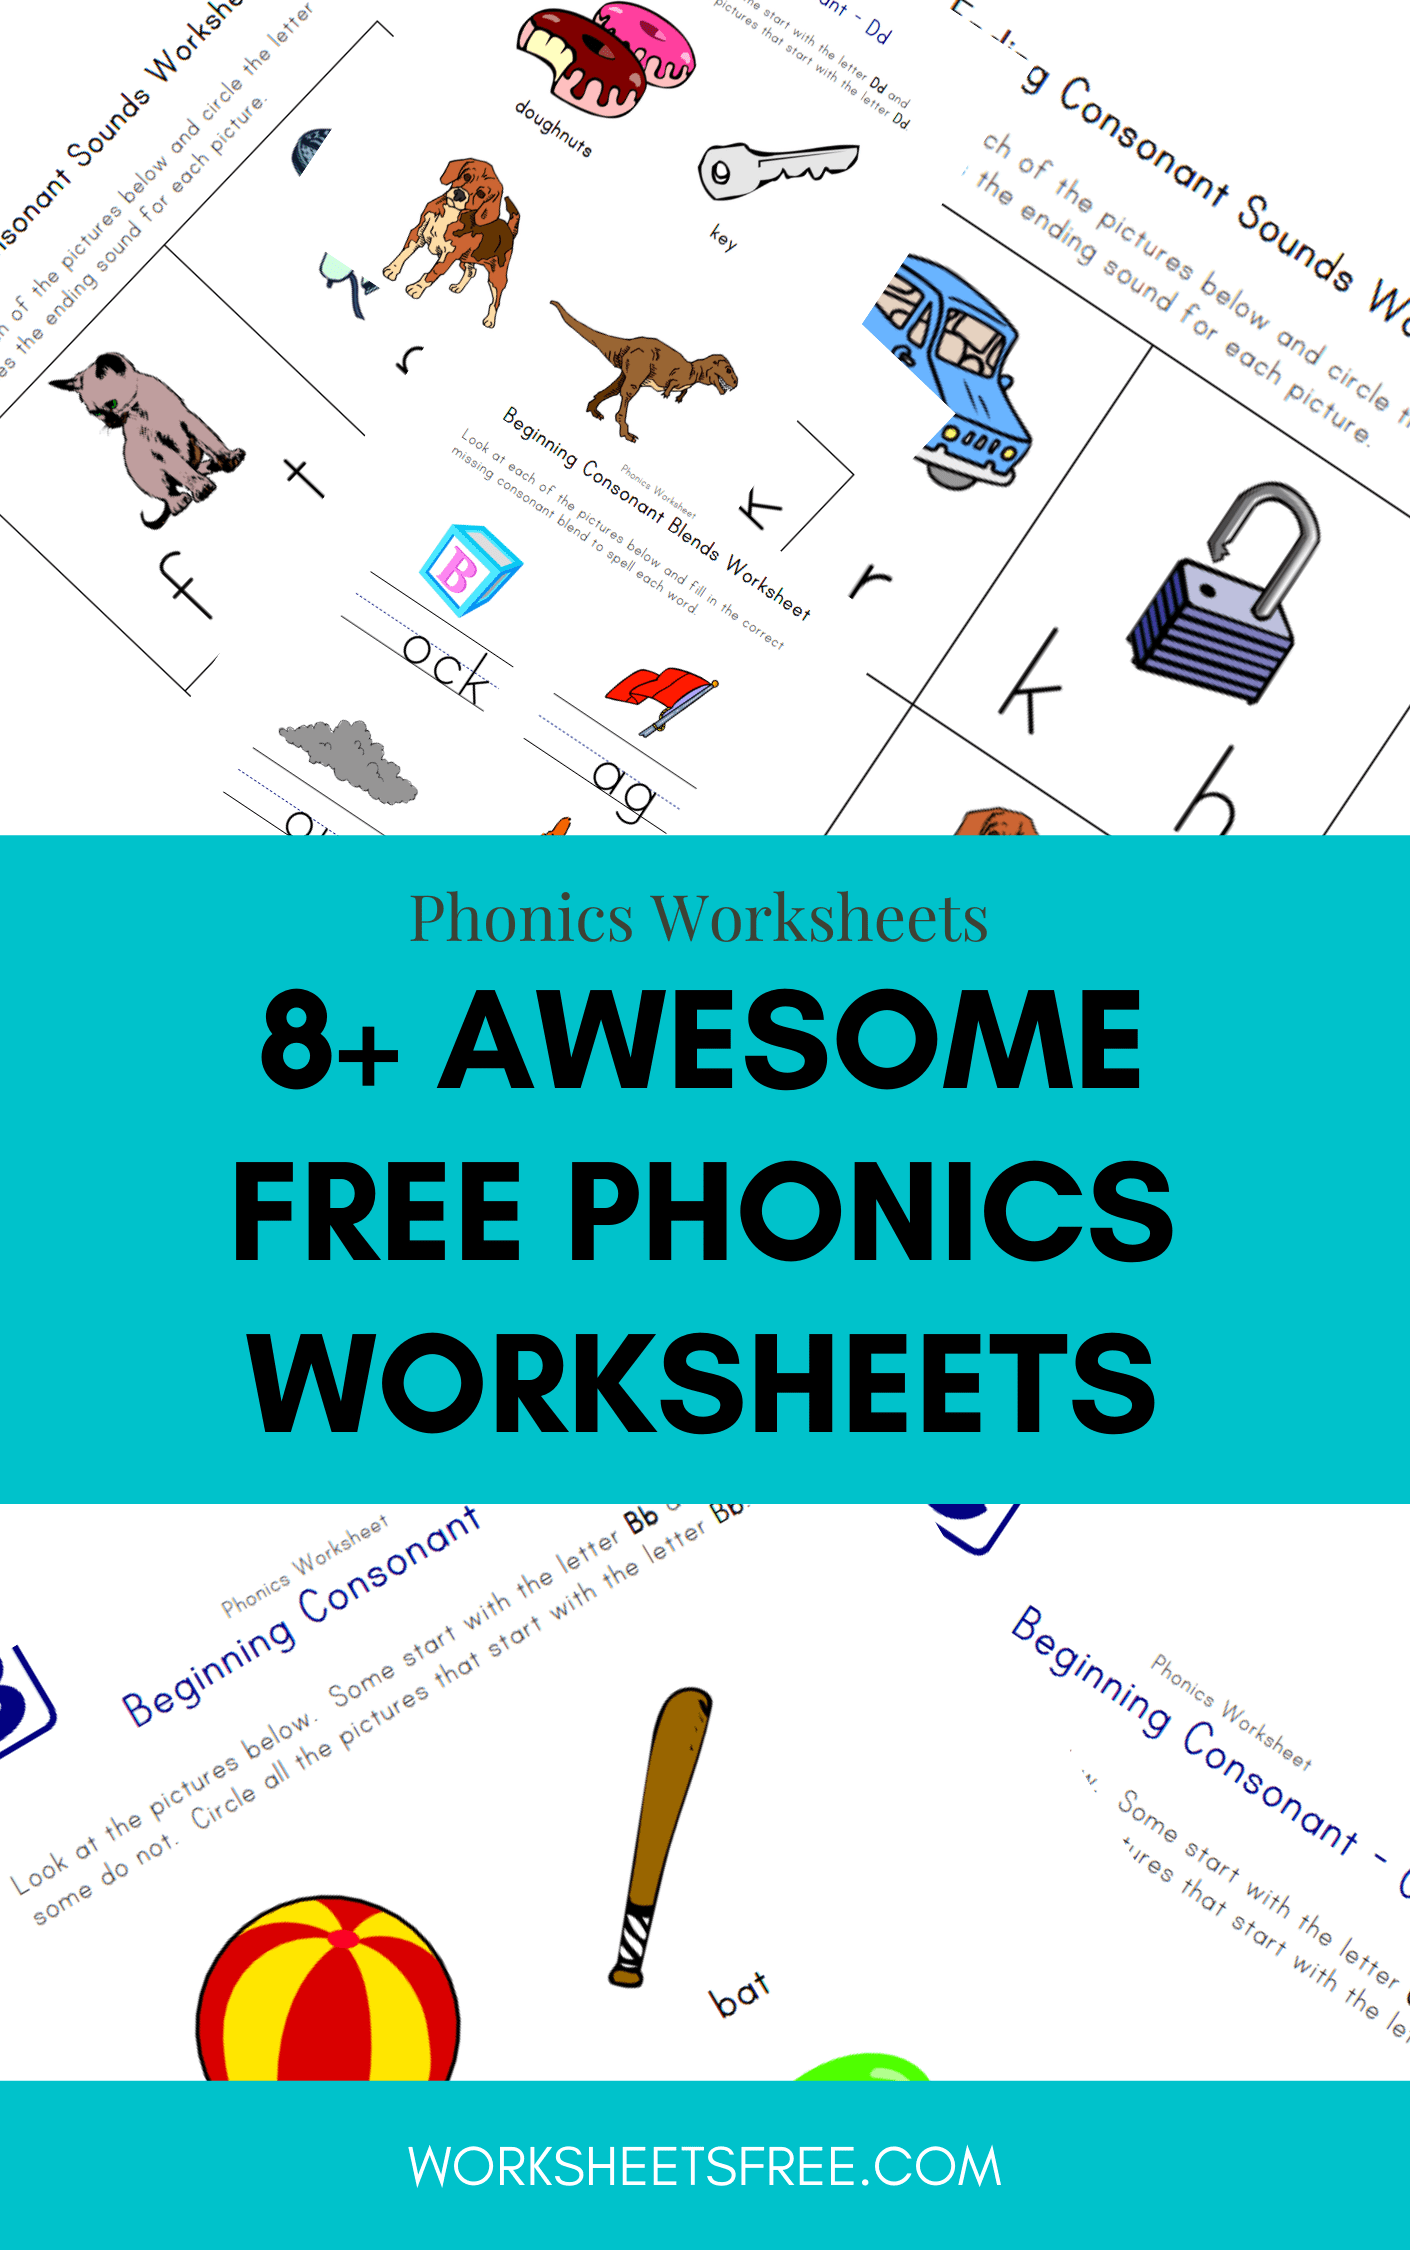 small resolution of 8+ Awesome Free Phonics Worksheets : Phoenix Worksheets   Worksheets Free